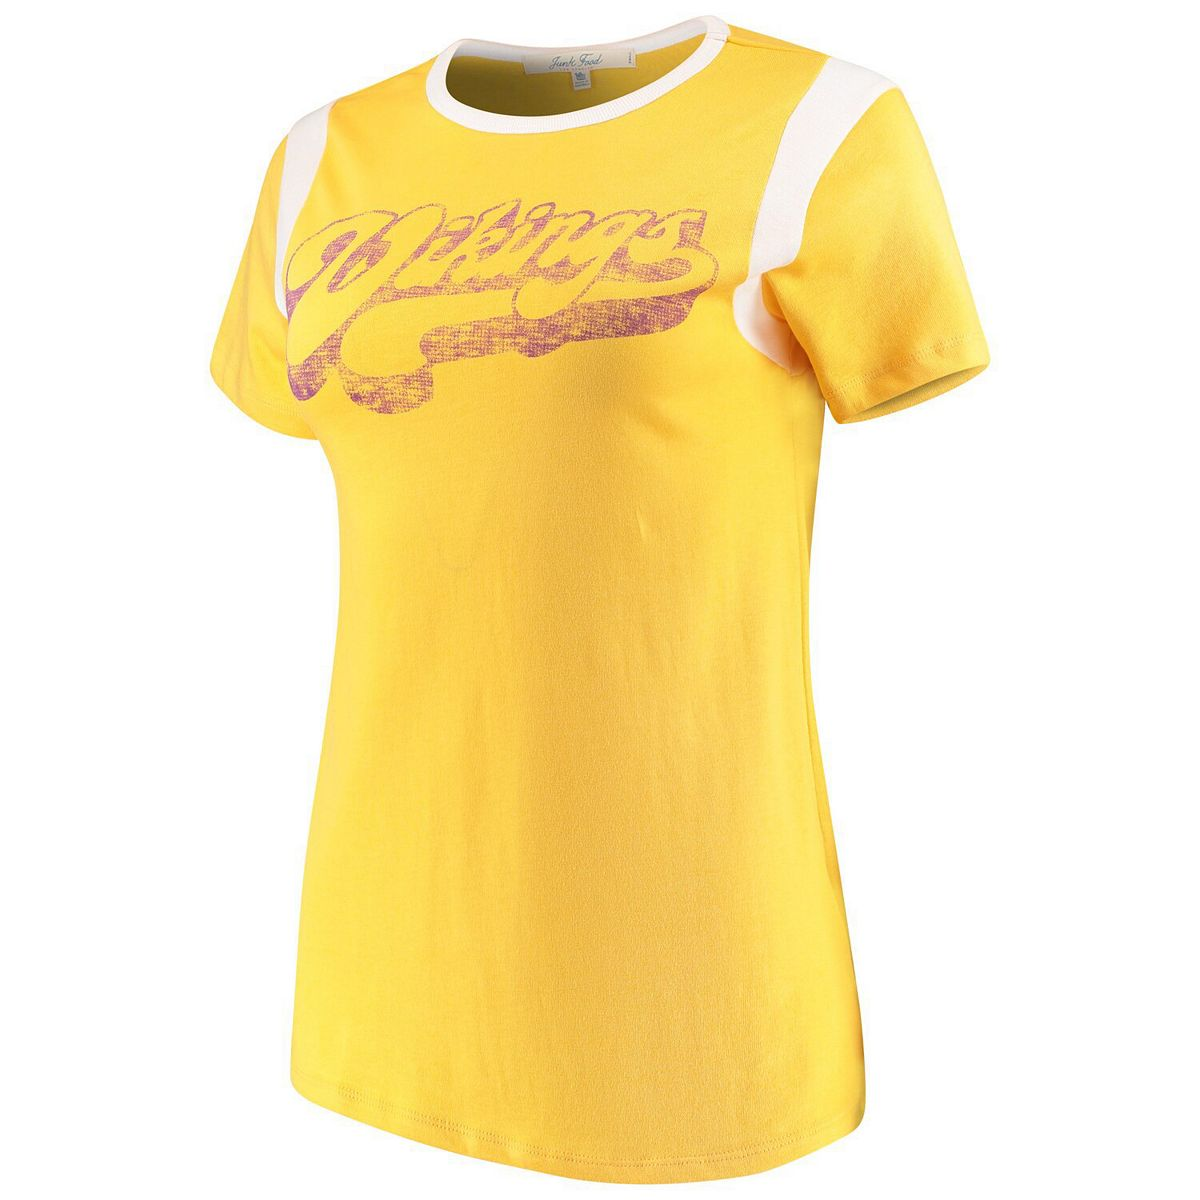 Women's Junk Food Gold/White Minnesota Vikings Retro Sport T-Shirt 454GS